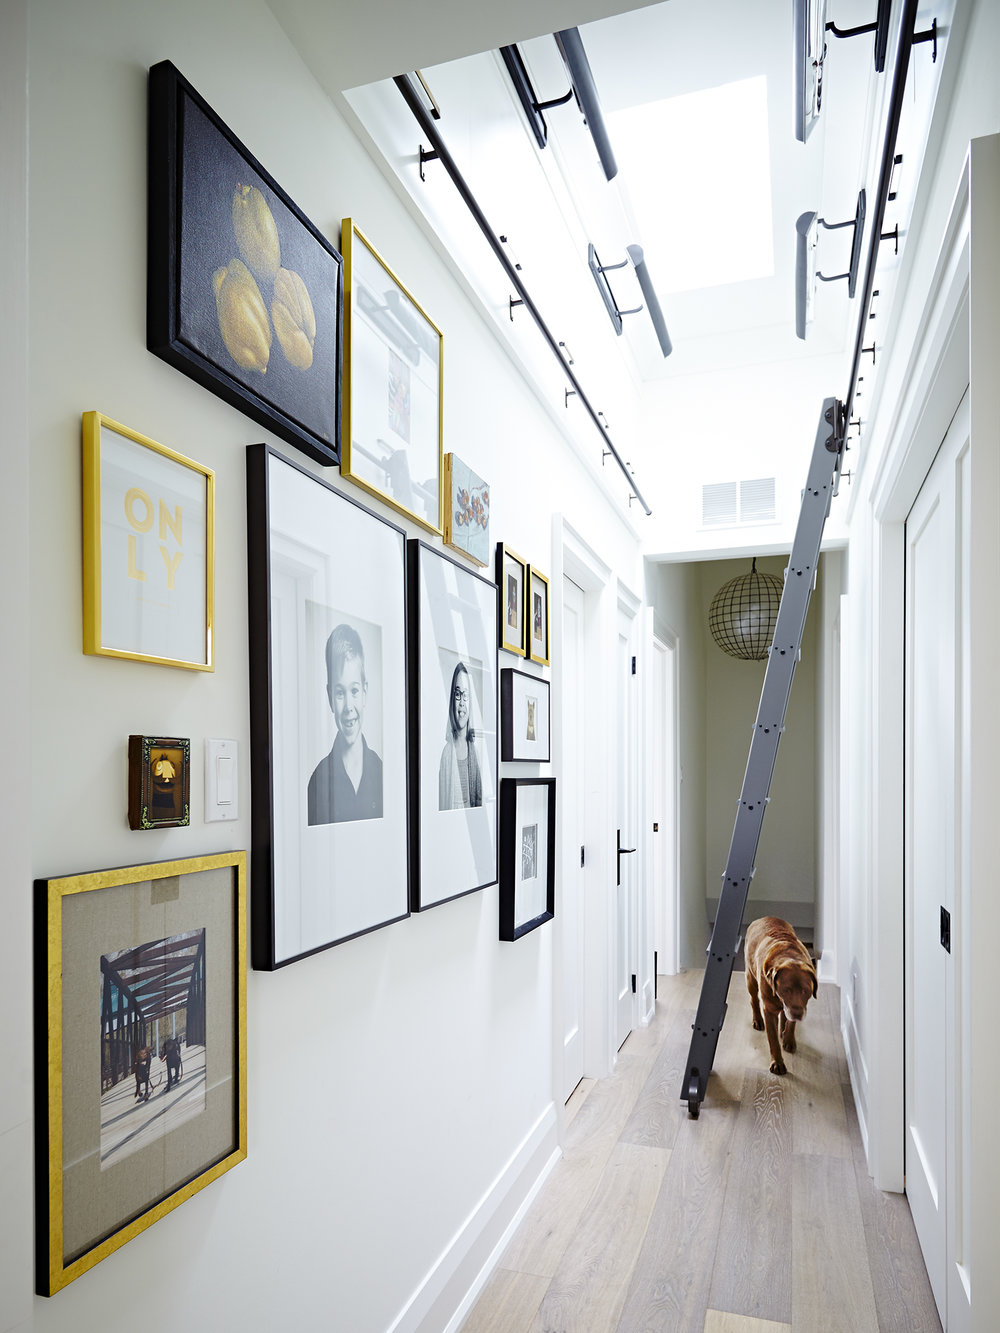 CindyBleeksHouse_April_2016_516hallway.jpg